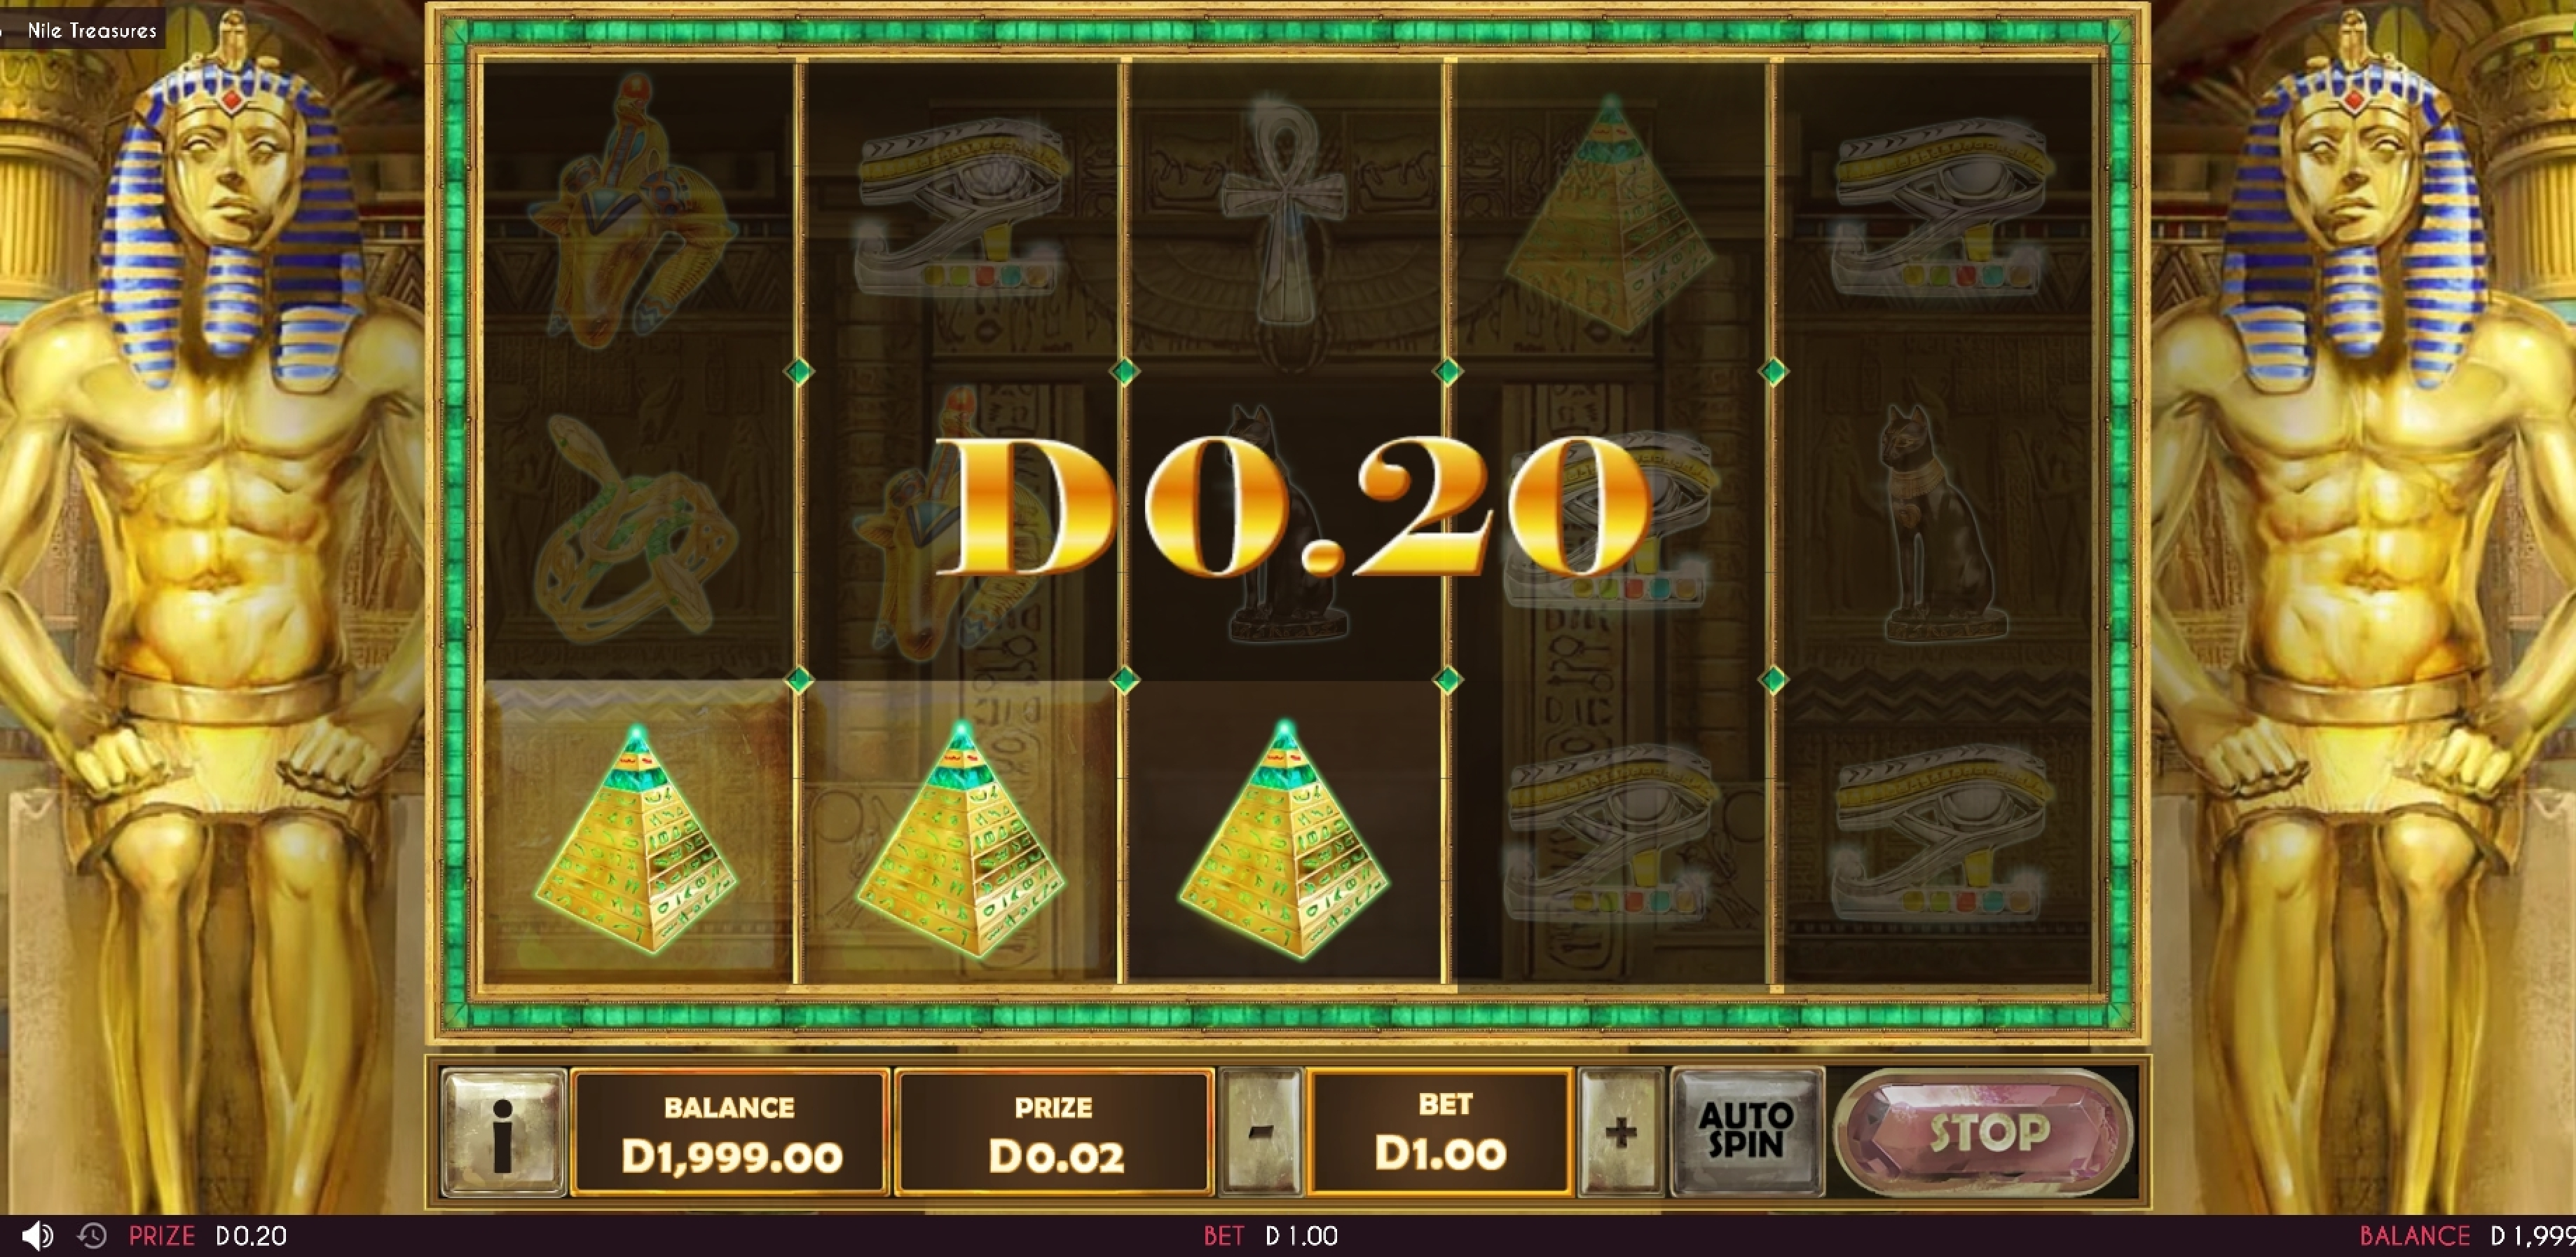 Win Money in Nile Treasures Free Slot Game by Triple Cherry